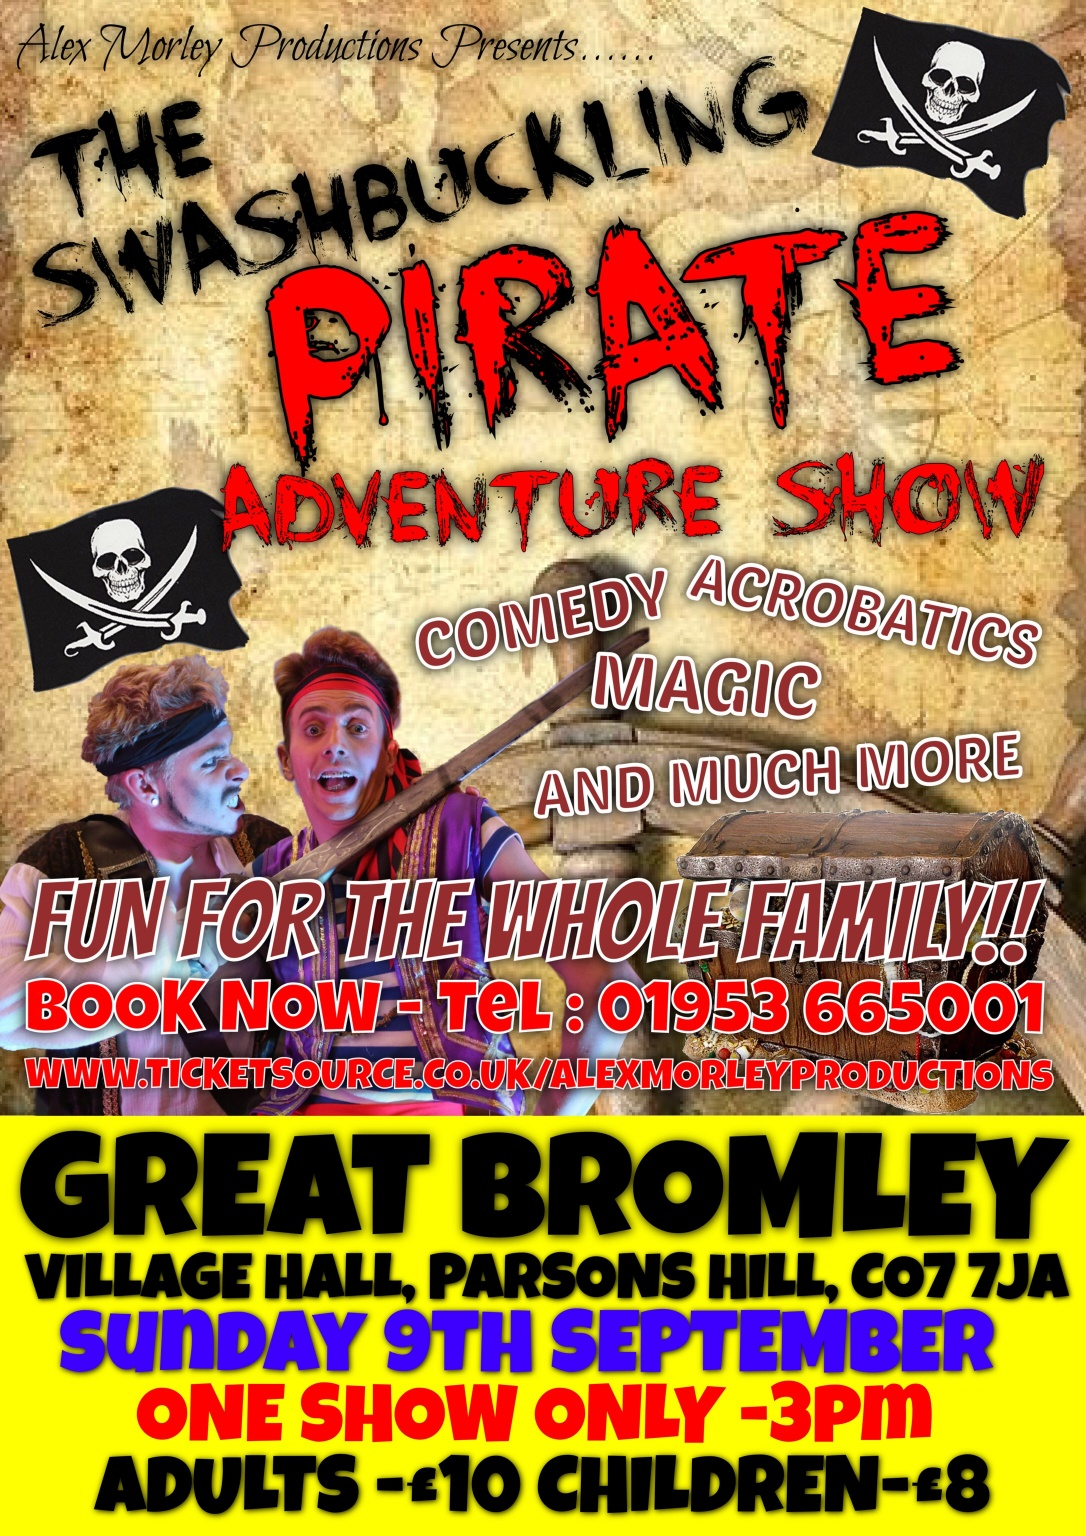 The Swashbuckling Pirate Adventure Show